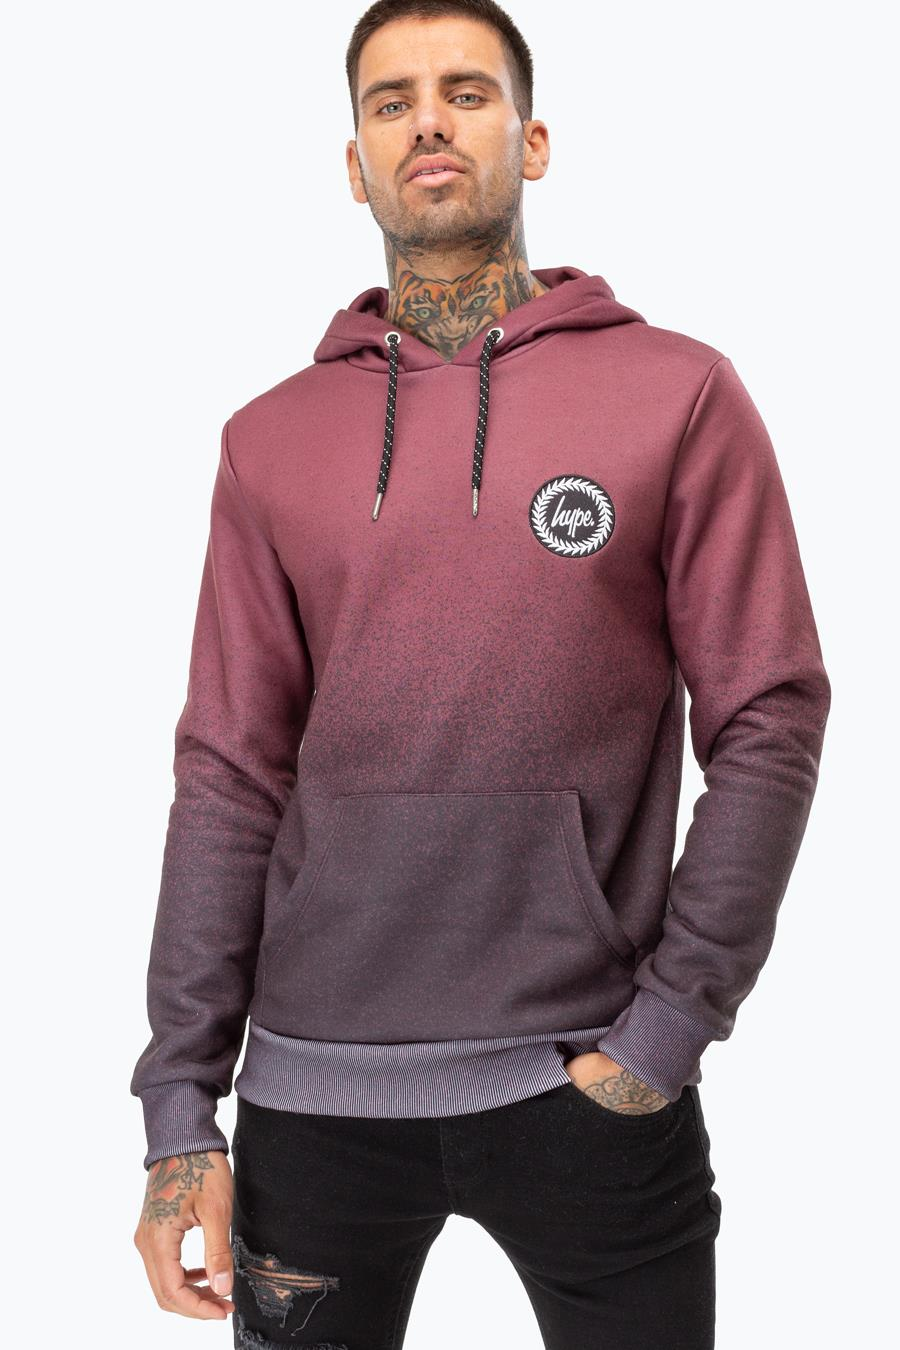 Image of Hype Burgundy Speckle Fade Mens Burgundy/black Pullover Hoodie | Size 2X-Large